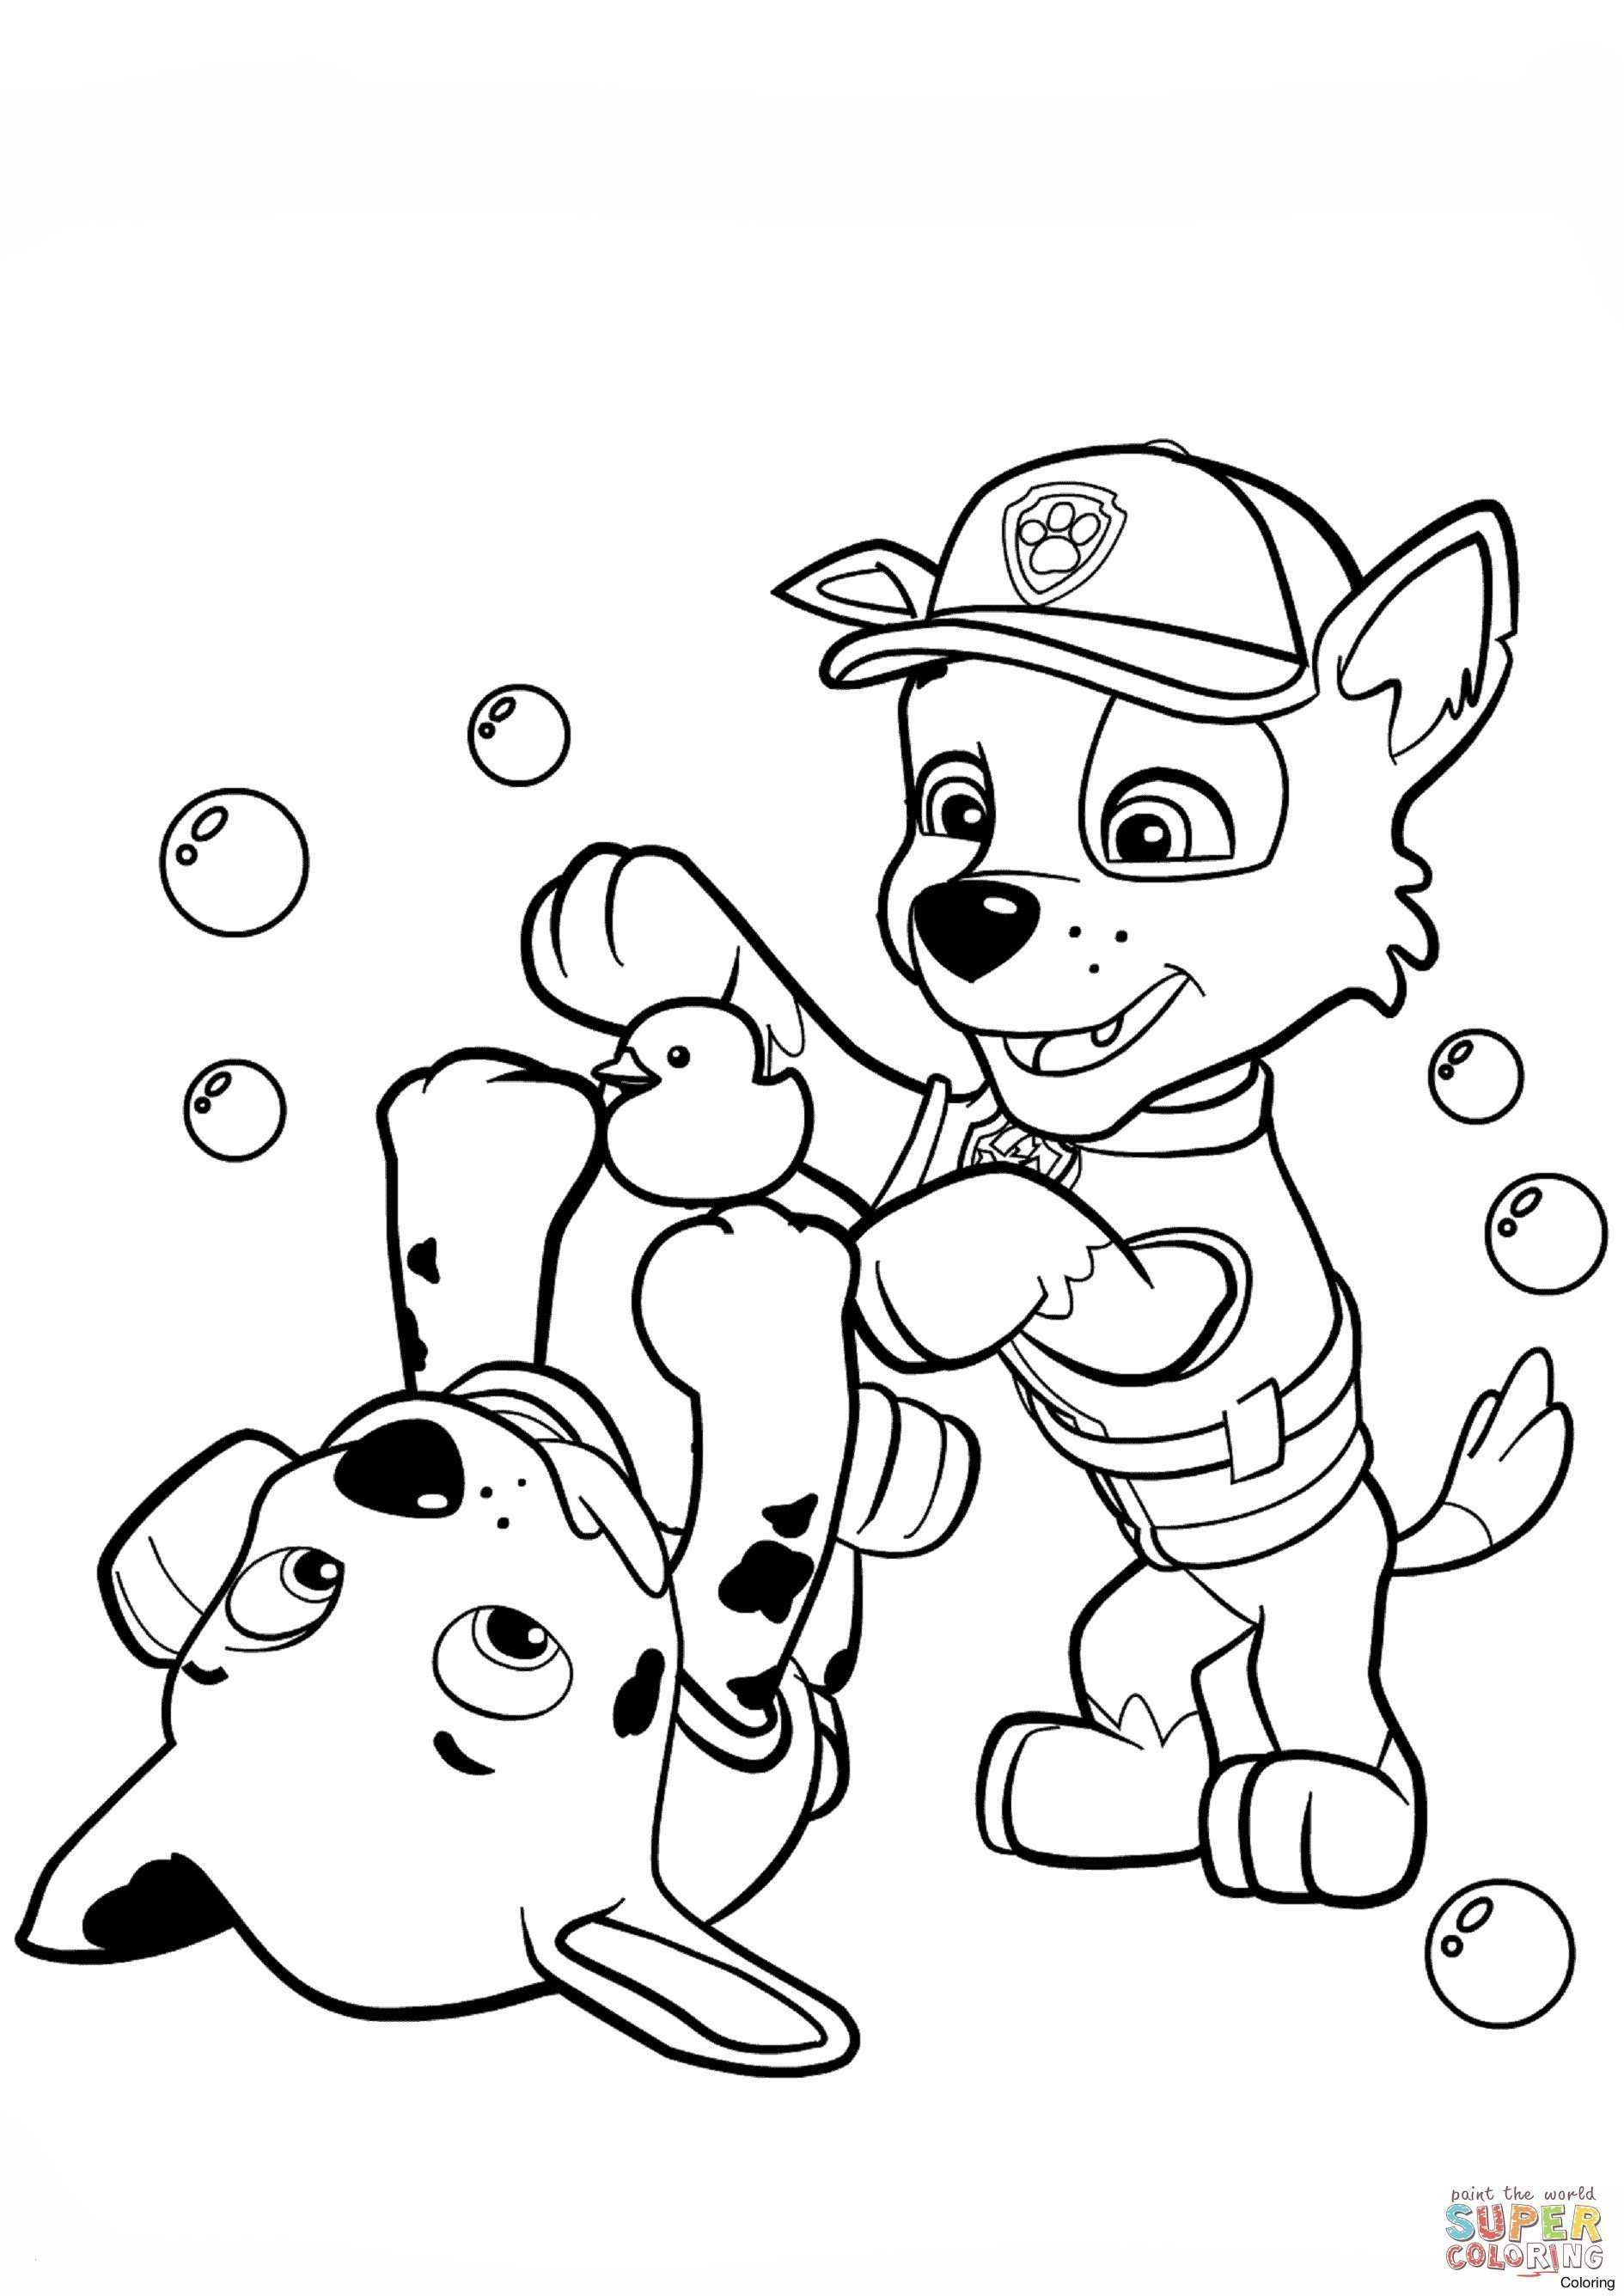 Paw Patrol Zentrale Ausmalbilder Das Beste Von Marshall Paw Patrol Coloring Page Awesome 140 Best Paw Patrol Stock